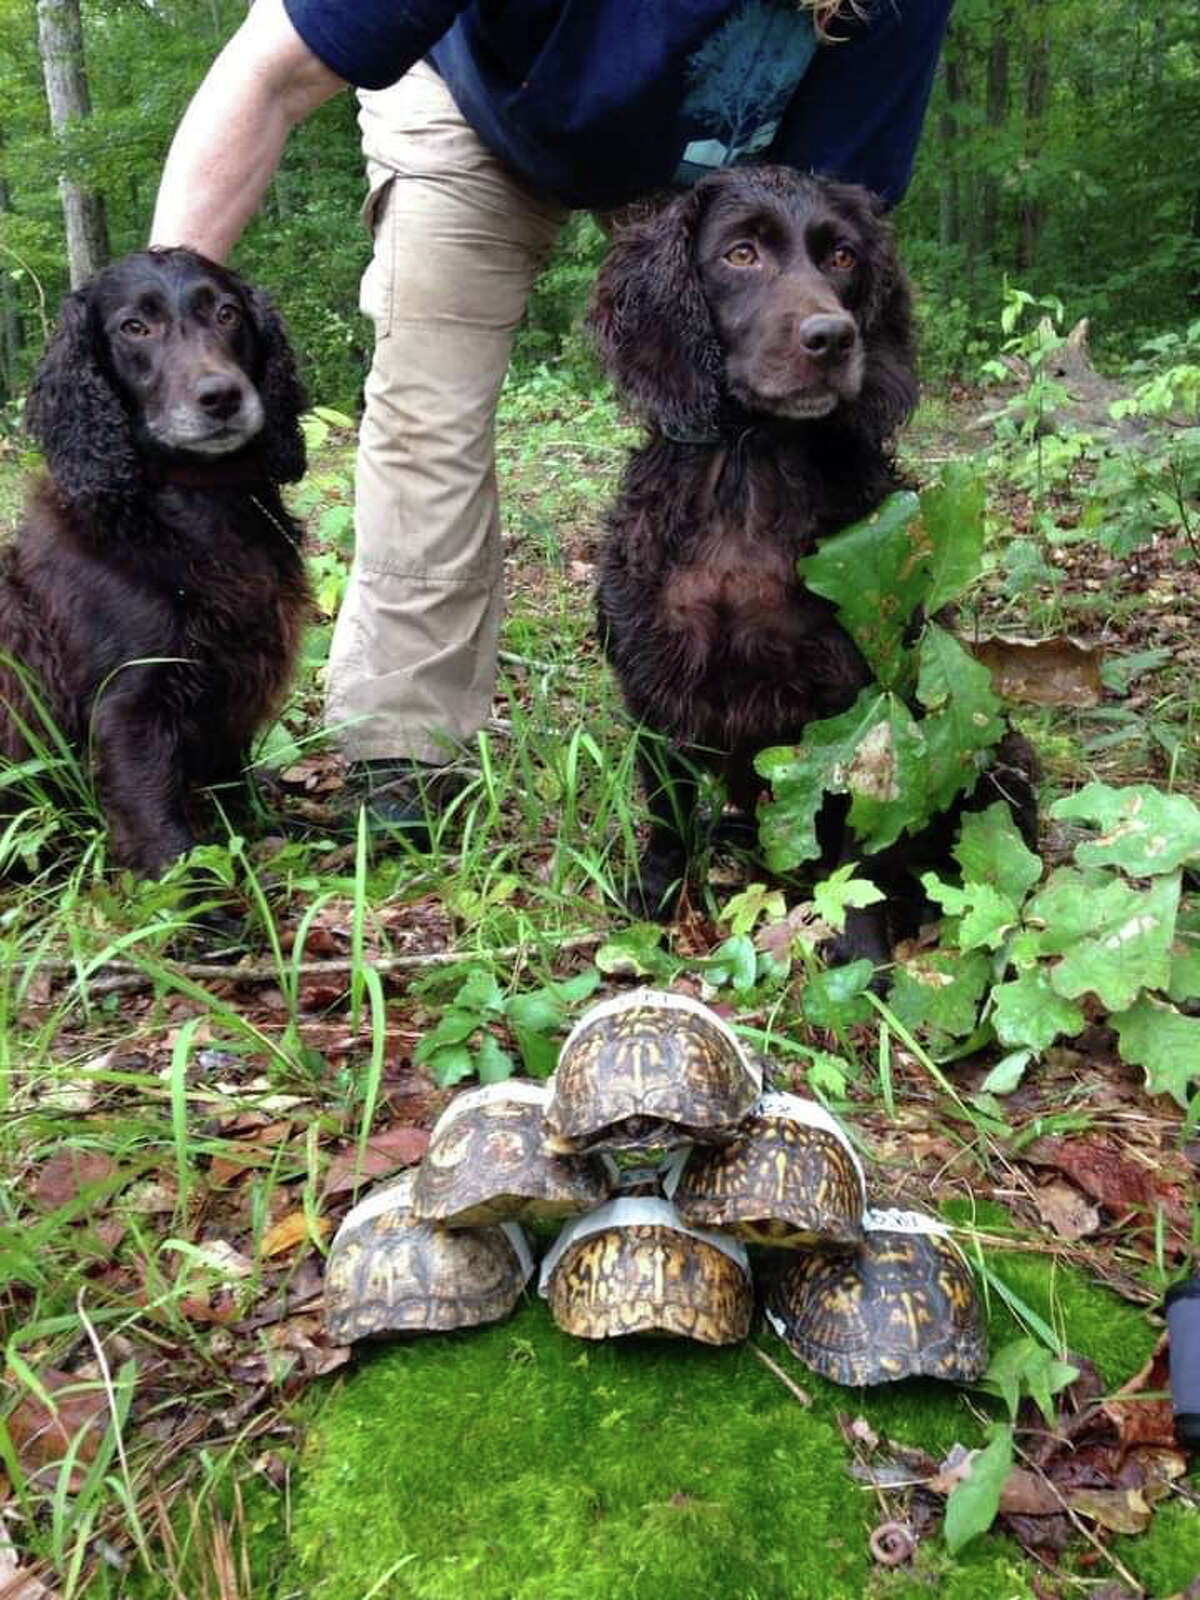 John Rucker's dogs with some of the box turtles they found in Raleigh, N.C., in 2015.